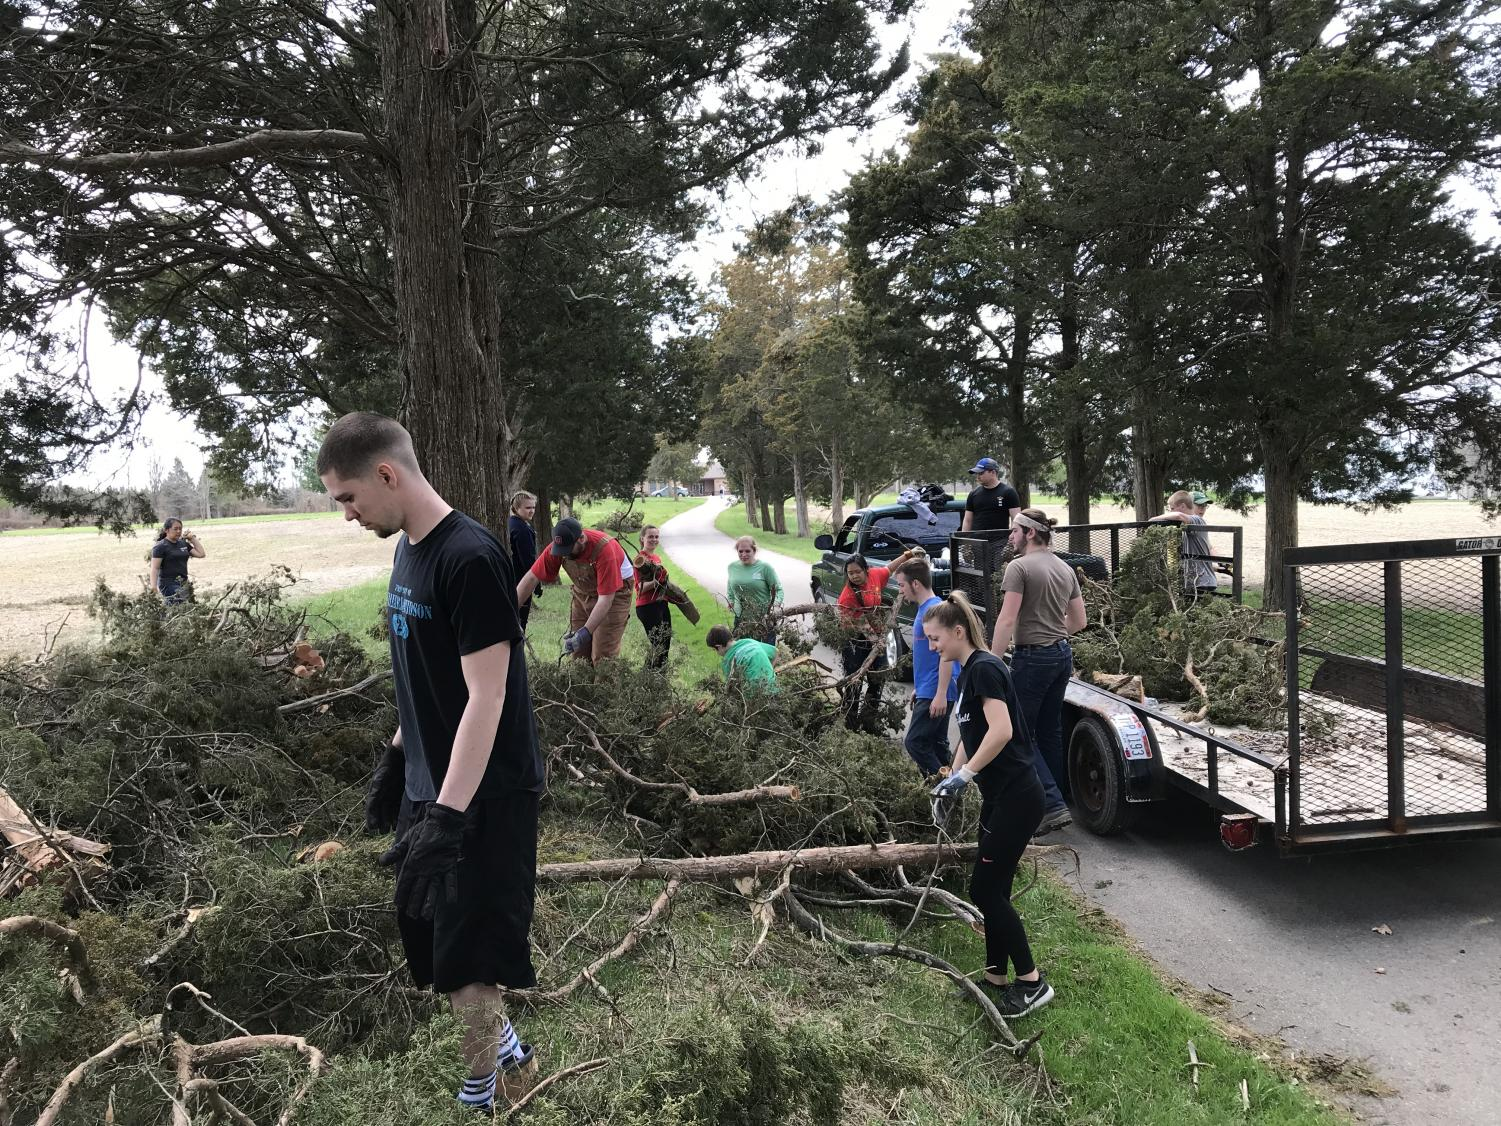 Herd 4 Christ members help clean up fallen trees at Midwestern Children's Home in Pleasant Plain, Ohio.